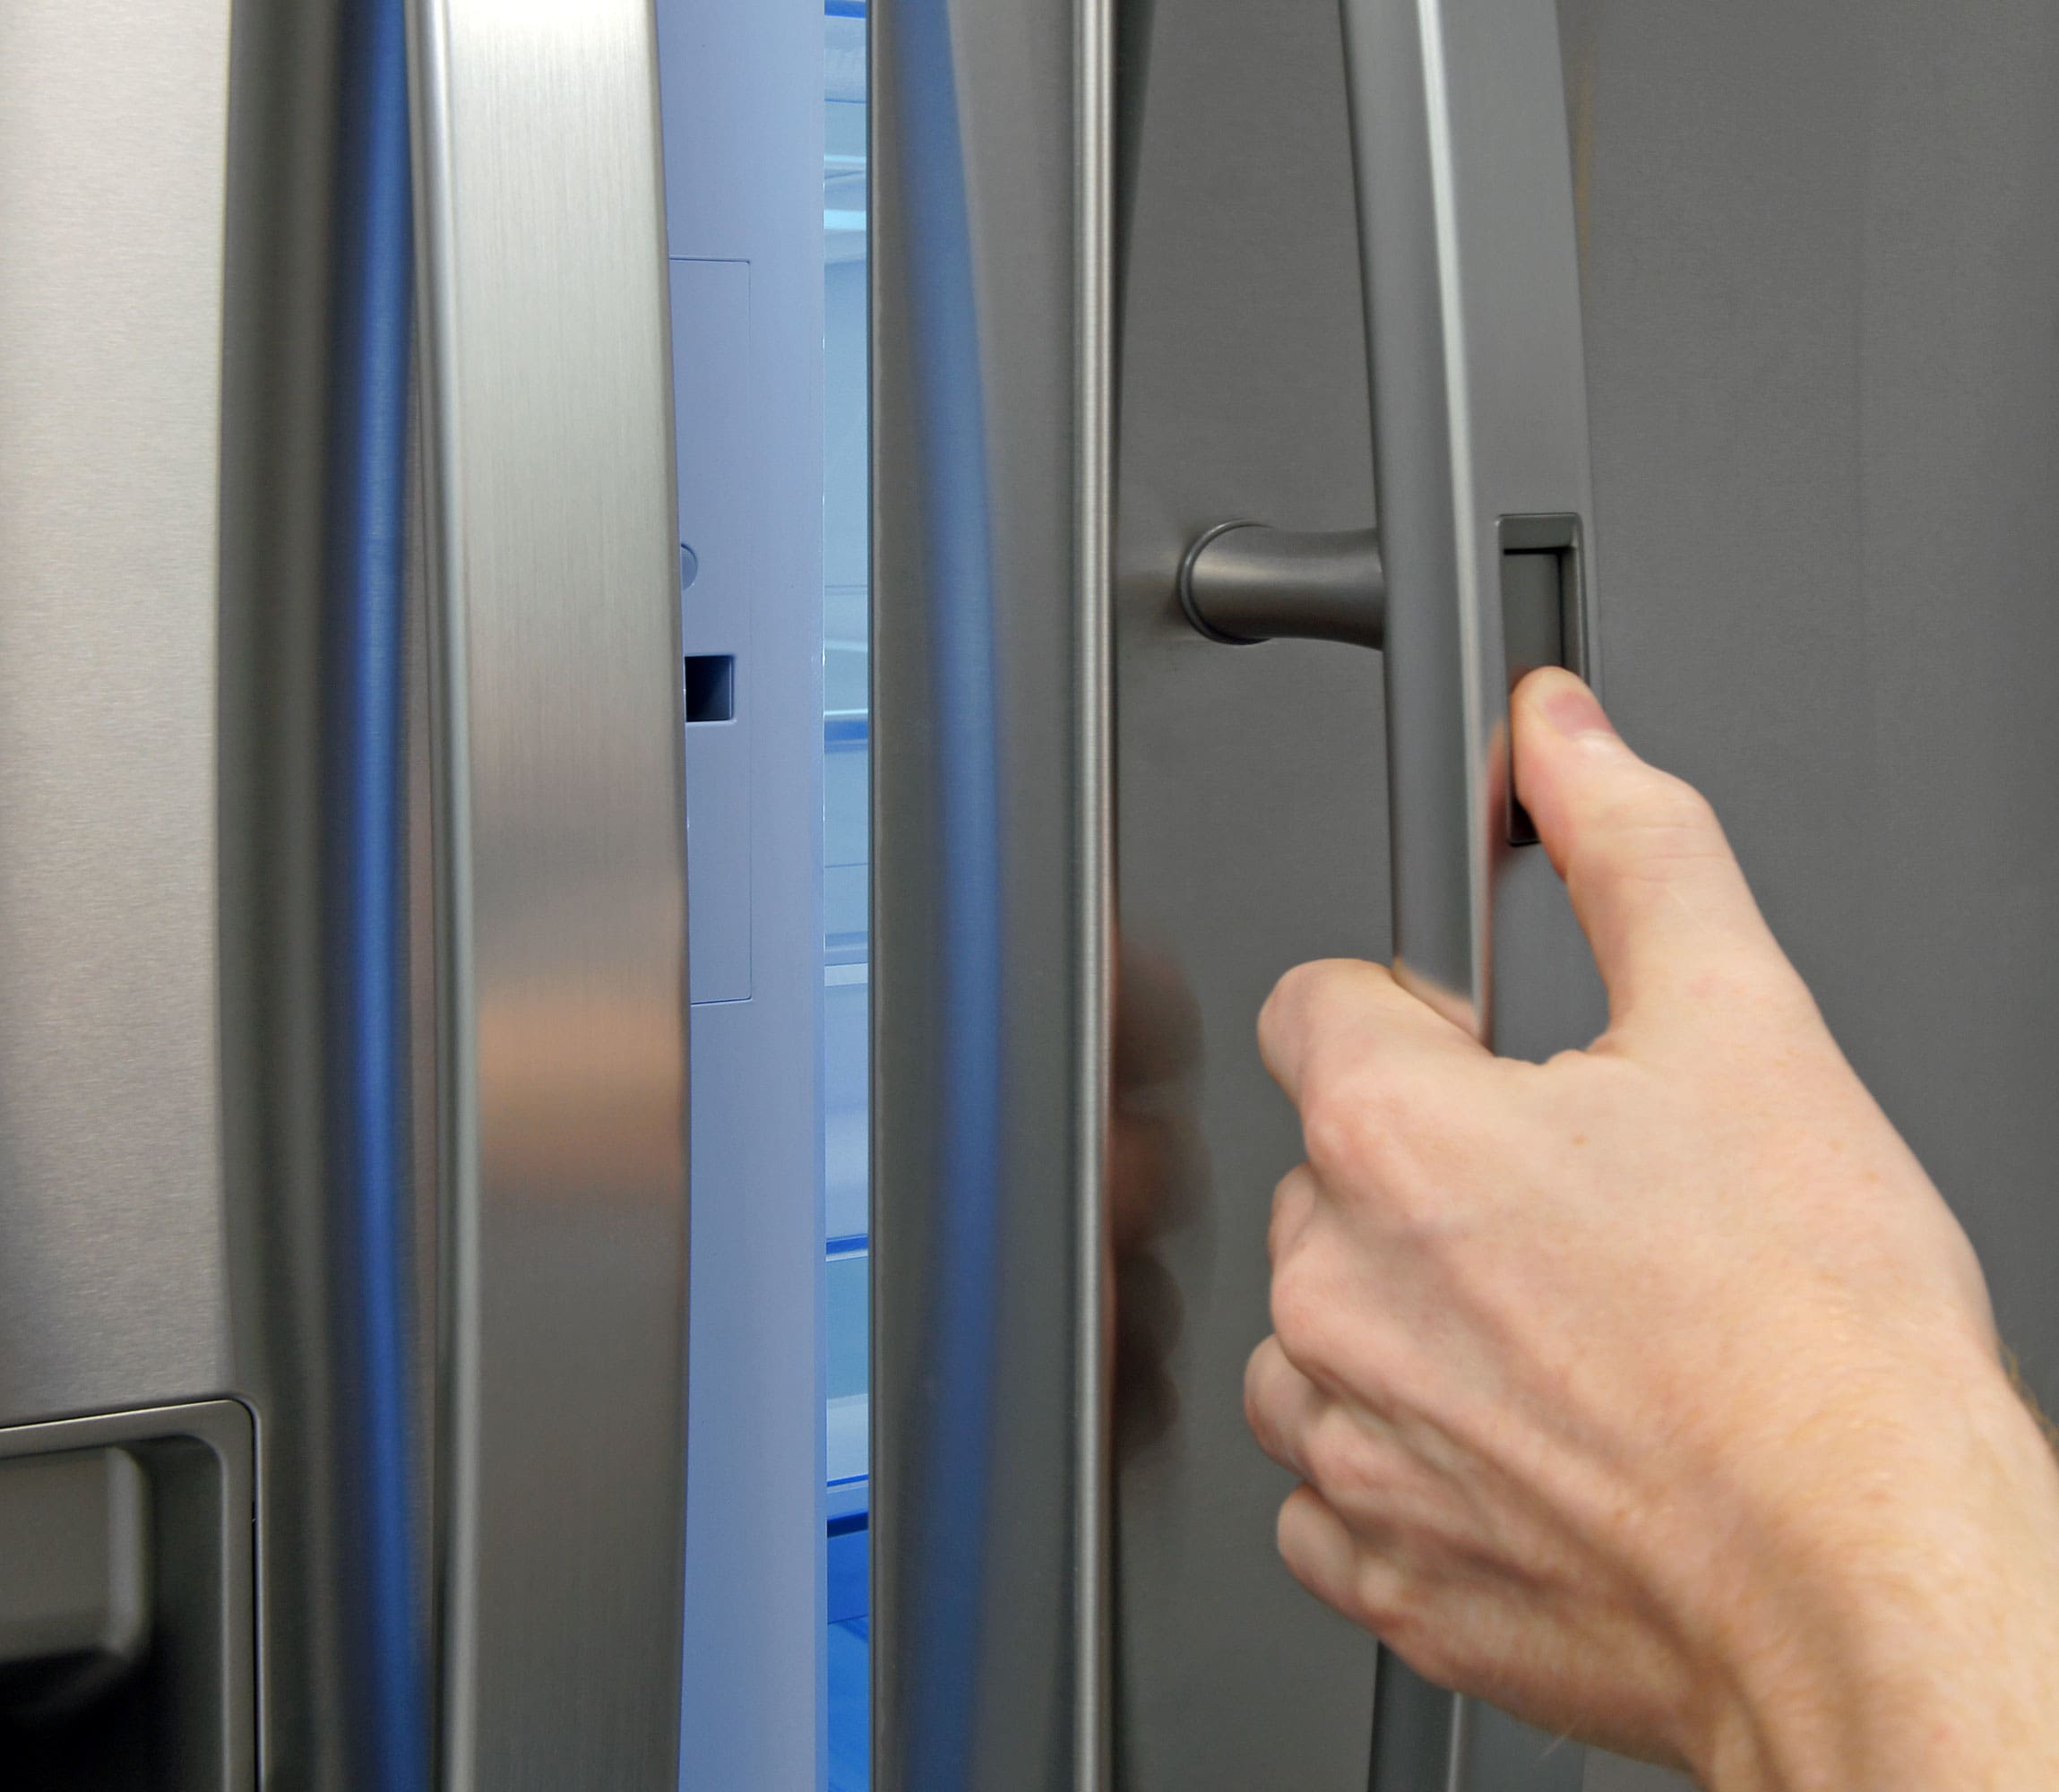 Pushing this little button on the LG LMXS30776S's handle grants you access to the door-in-door storage compartment.